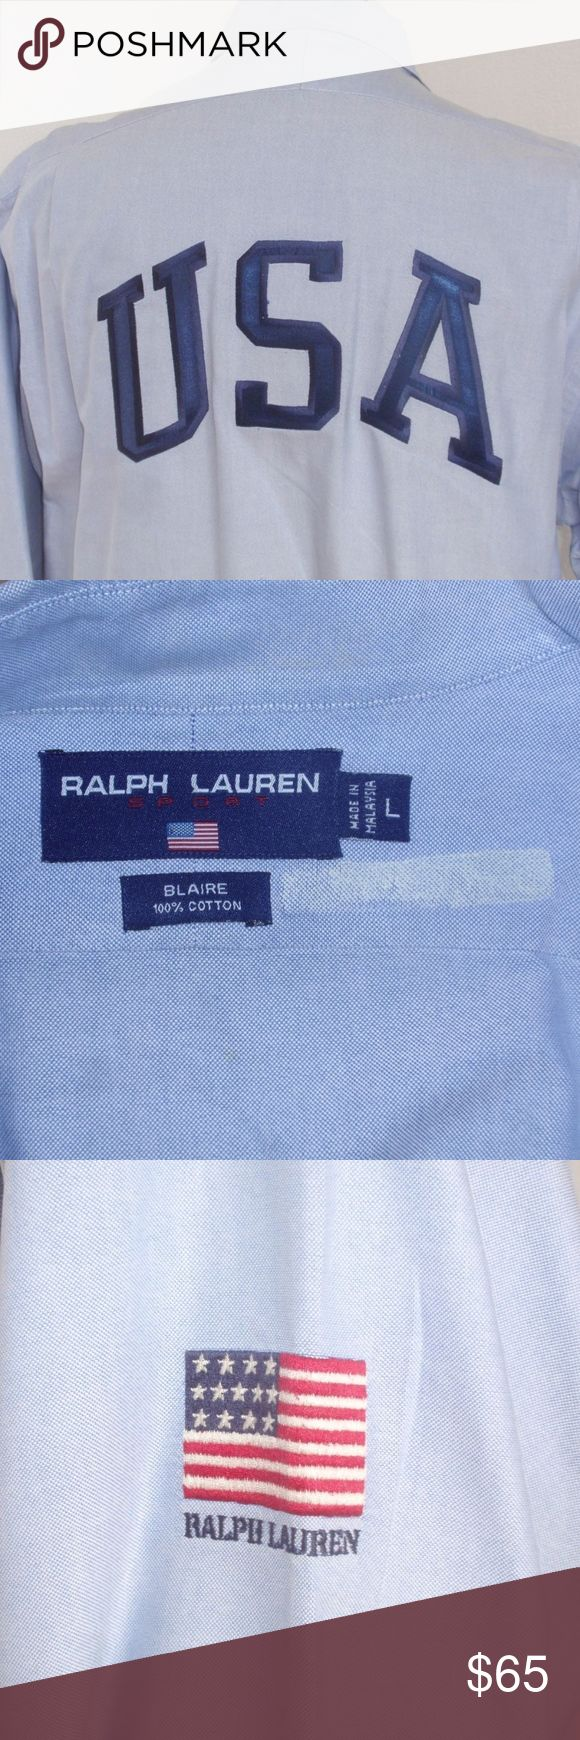 """Ralph Lauren 1993 USA Flag Blue Button Down Oxford Men's awesome 1993 blue oxford button down shirt from 1993 Large USA applique on the back American Flag on right sleeve  Maker: Ralph Lauren Fabric: 100% Cotton Color: Blue Size: Large  generously sized  Measurements  Shoulder to Shoulder: 22"""" Armpit to Armpit: 28 1/4"""" Sleeve Length from Shoulder Seam: 25 1/4""""  Bottom of collar to Hem: 35""""       Condition:  The  white mark by the label on the inside is the cleaners label which I removed. EUC…"""